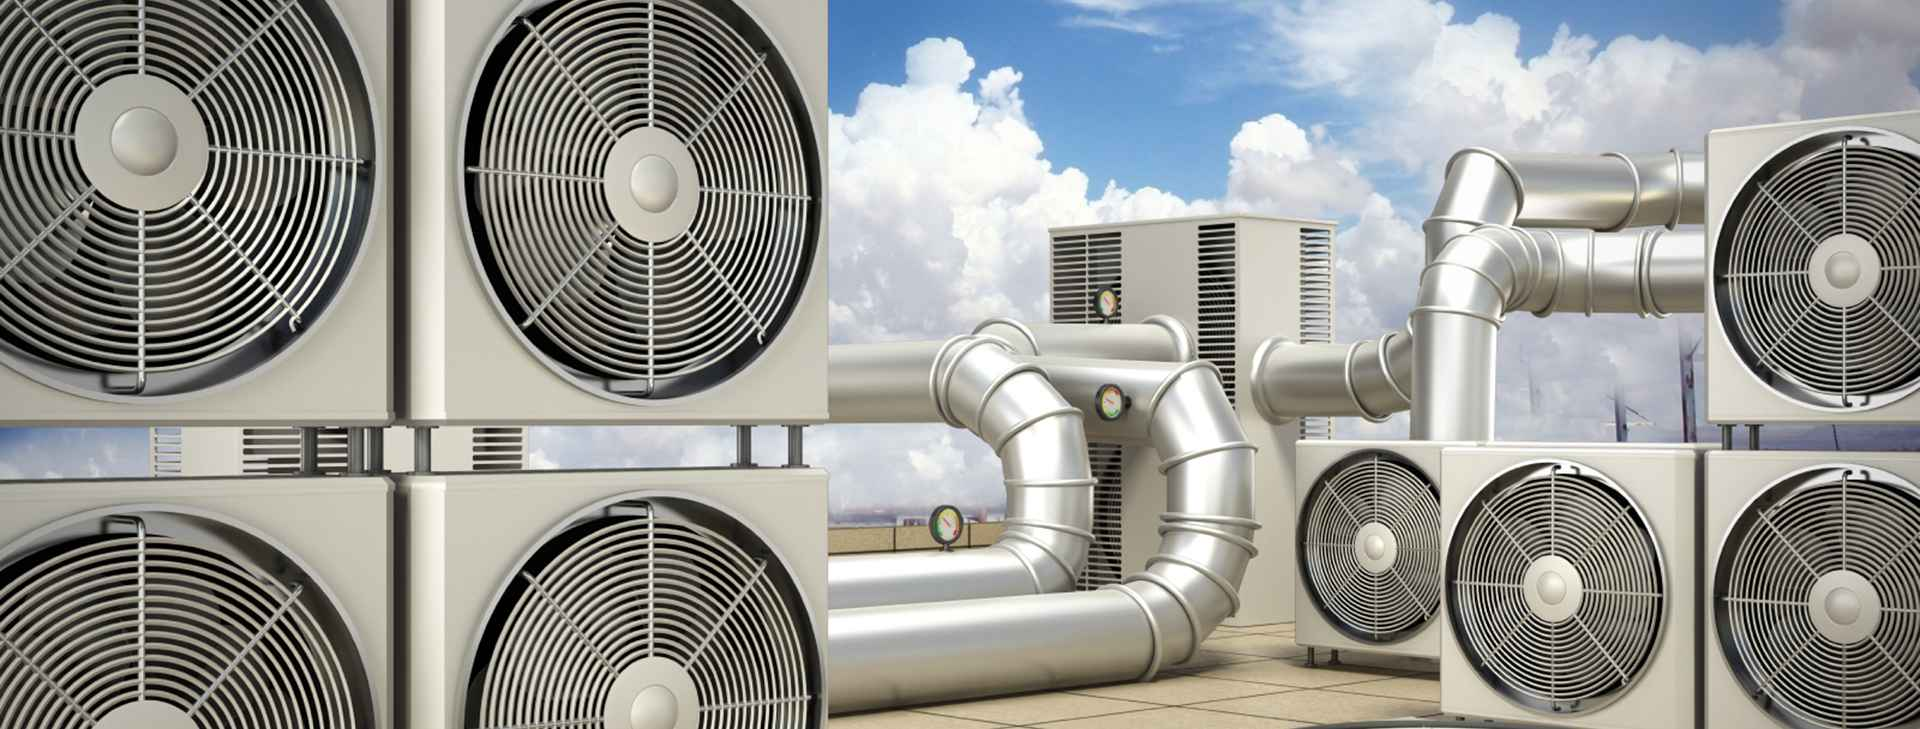 AirConSystem-000020282347 cropped